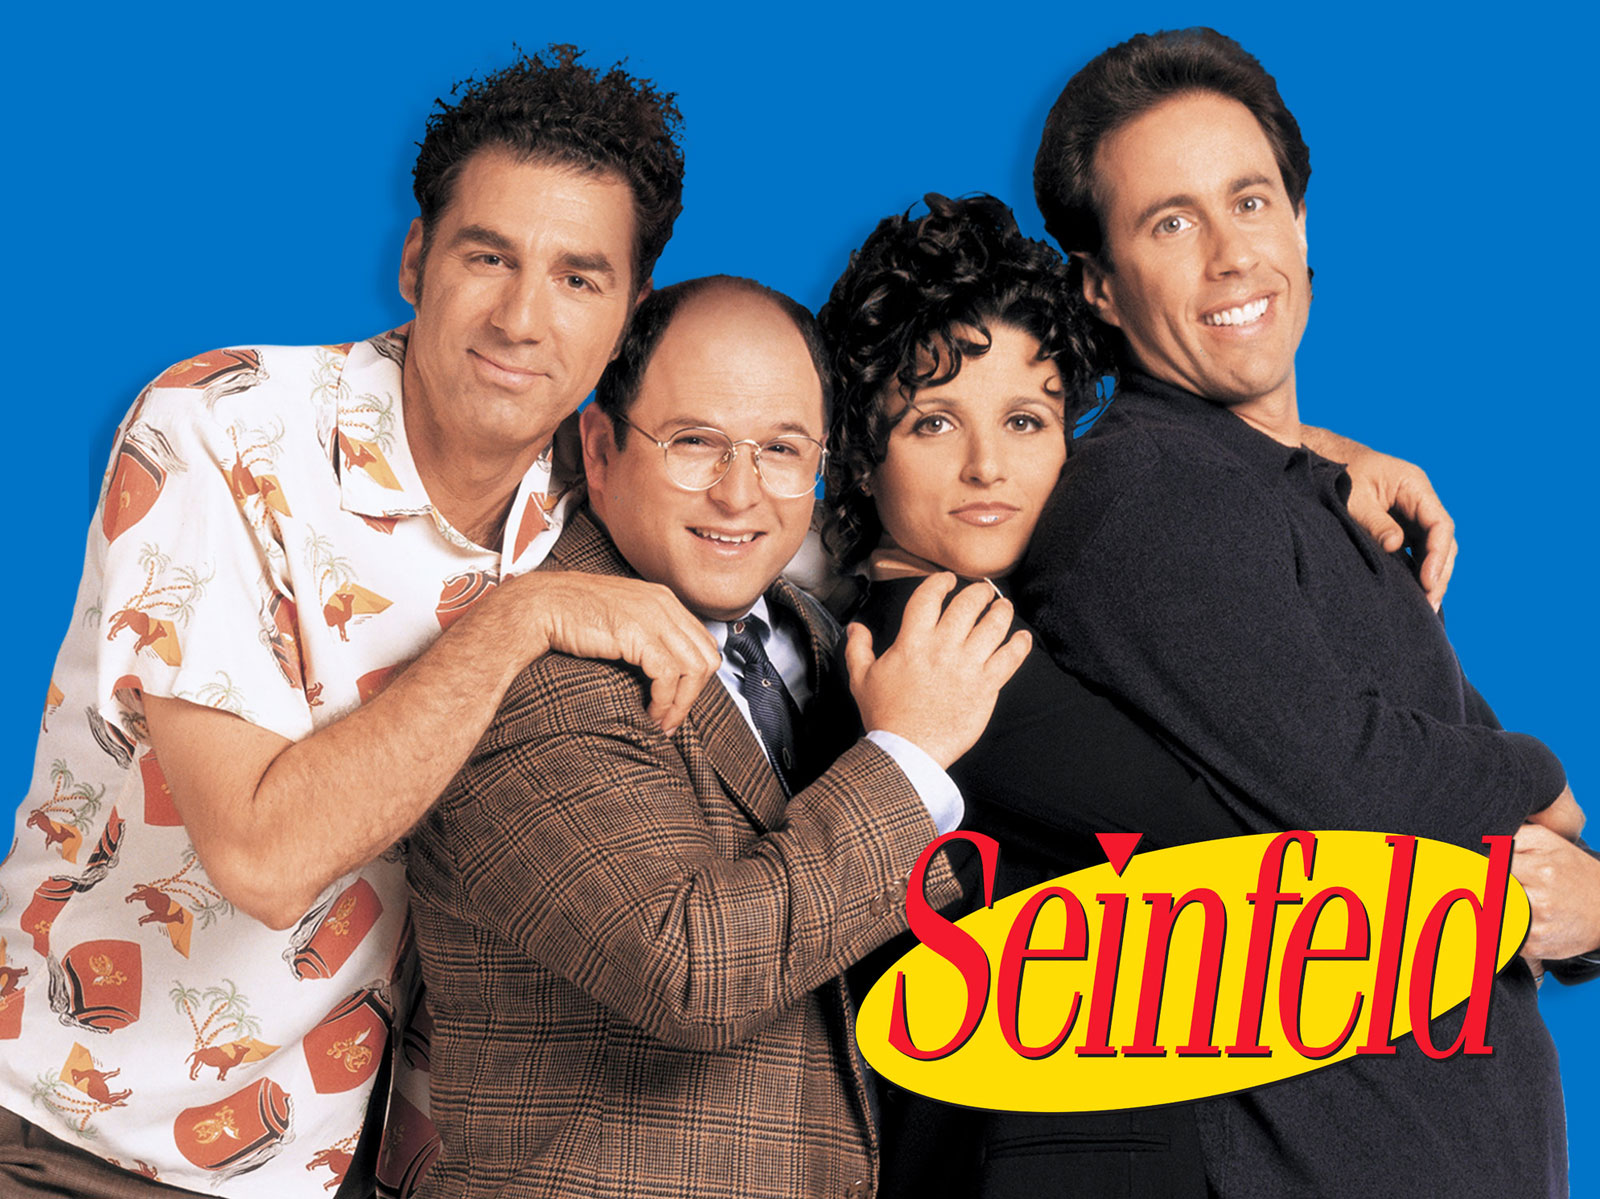 'Seinfeld' Live On Netflix, But Some Jokes Have Been Cropped Out Of View